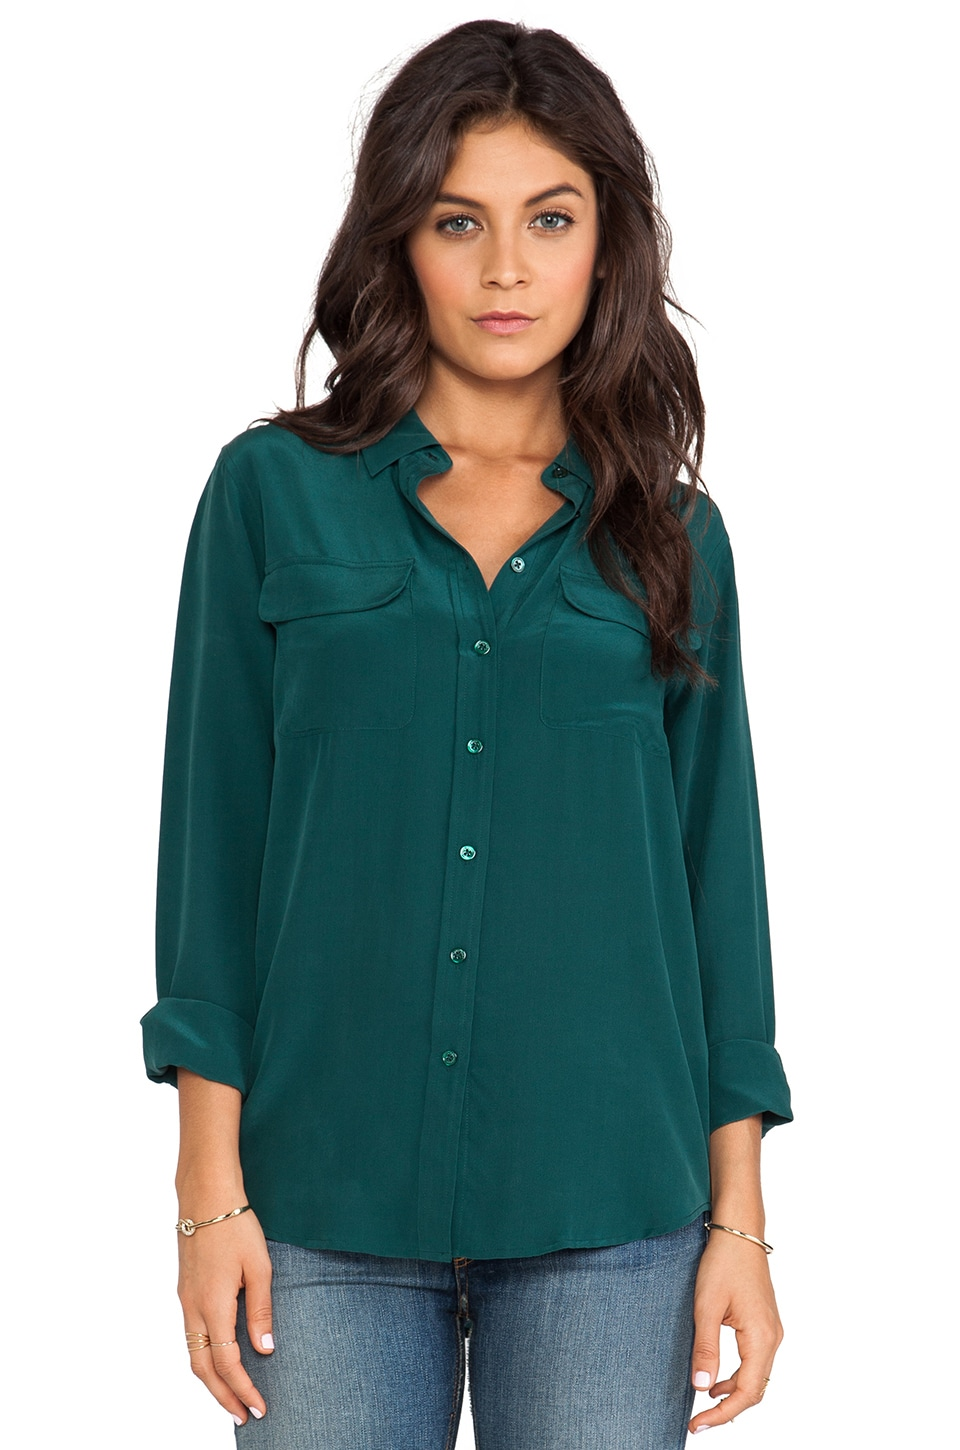 Equipment Slim Signature Blouse in Pine